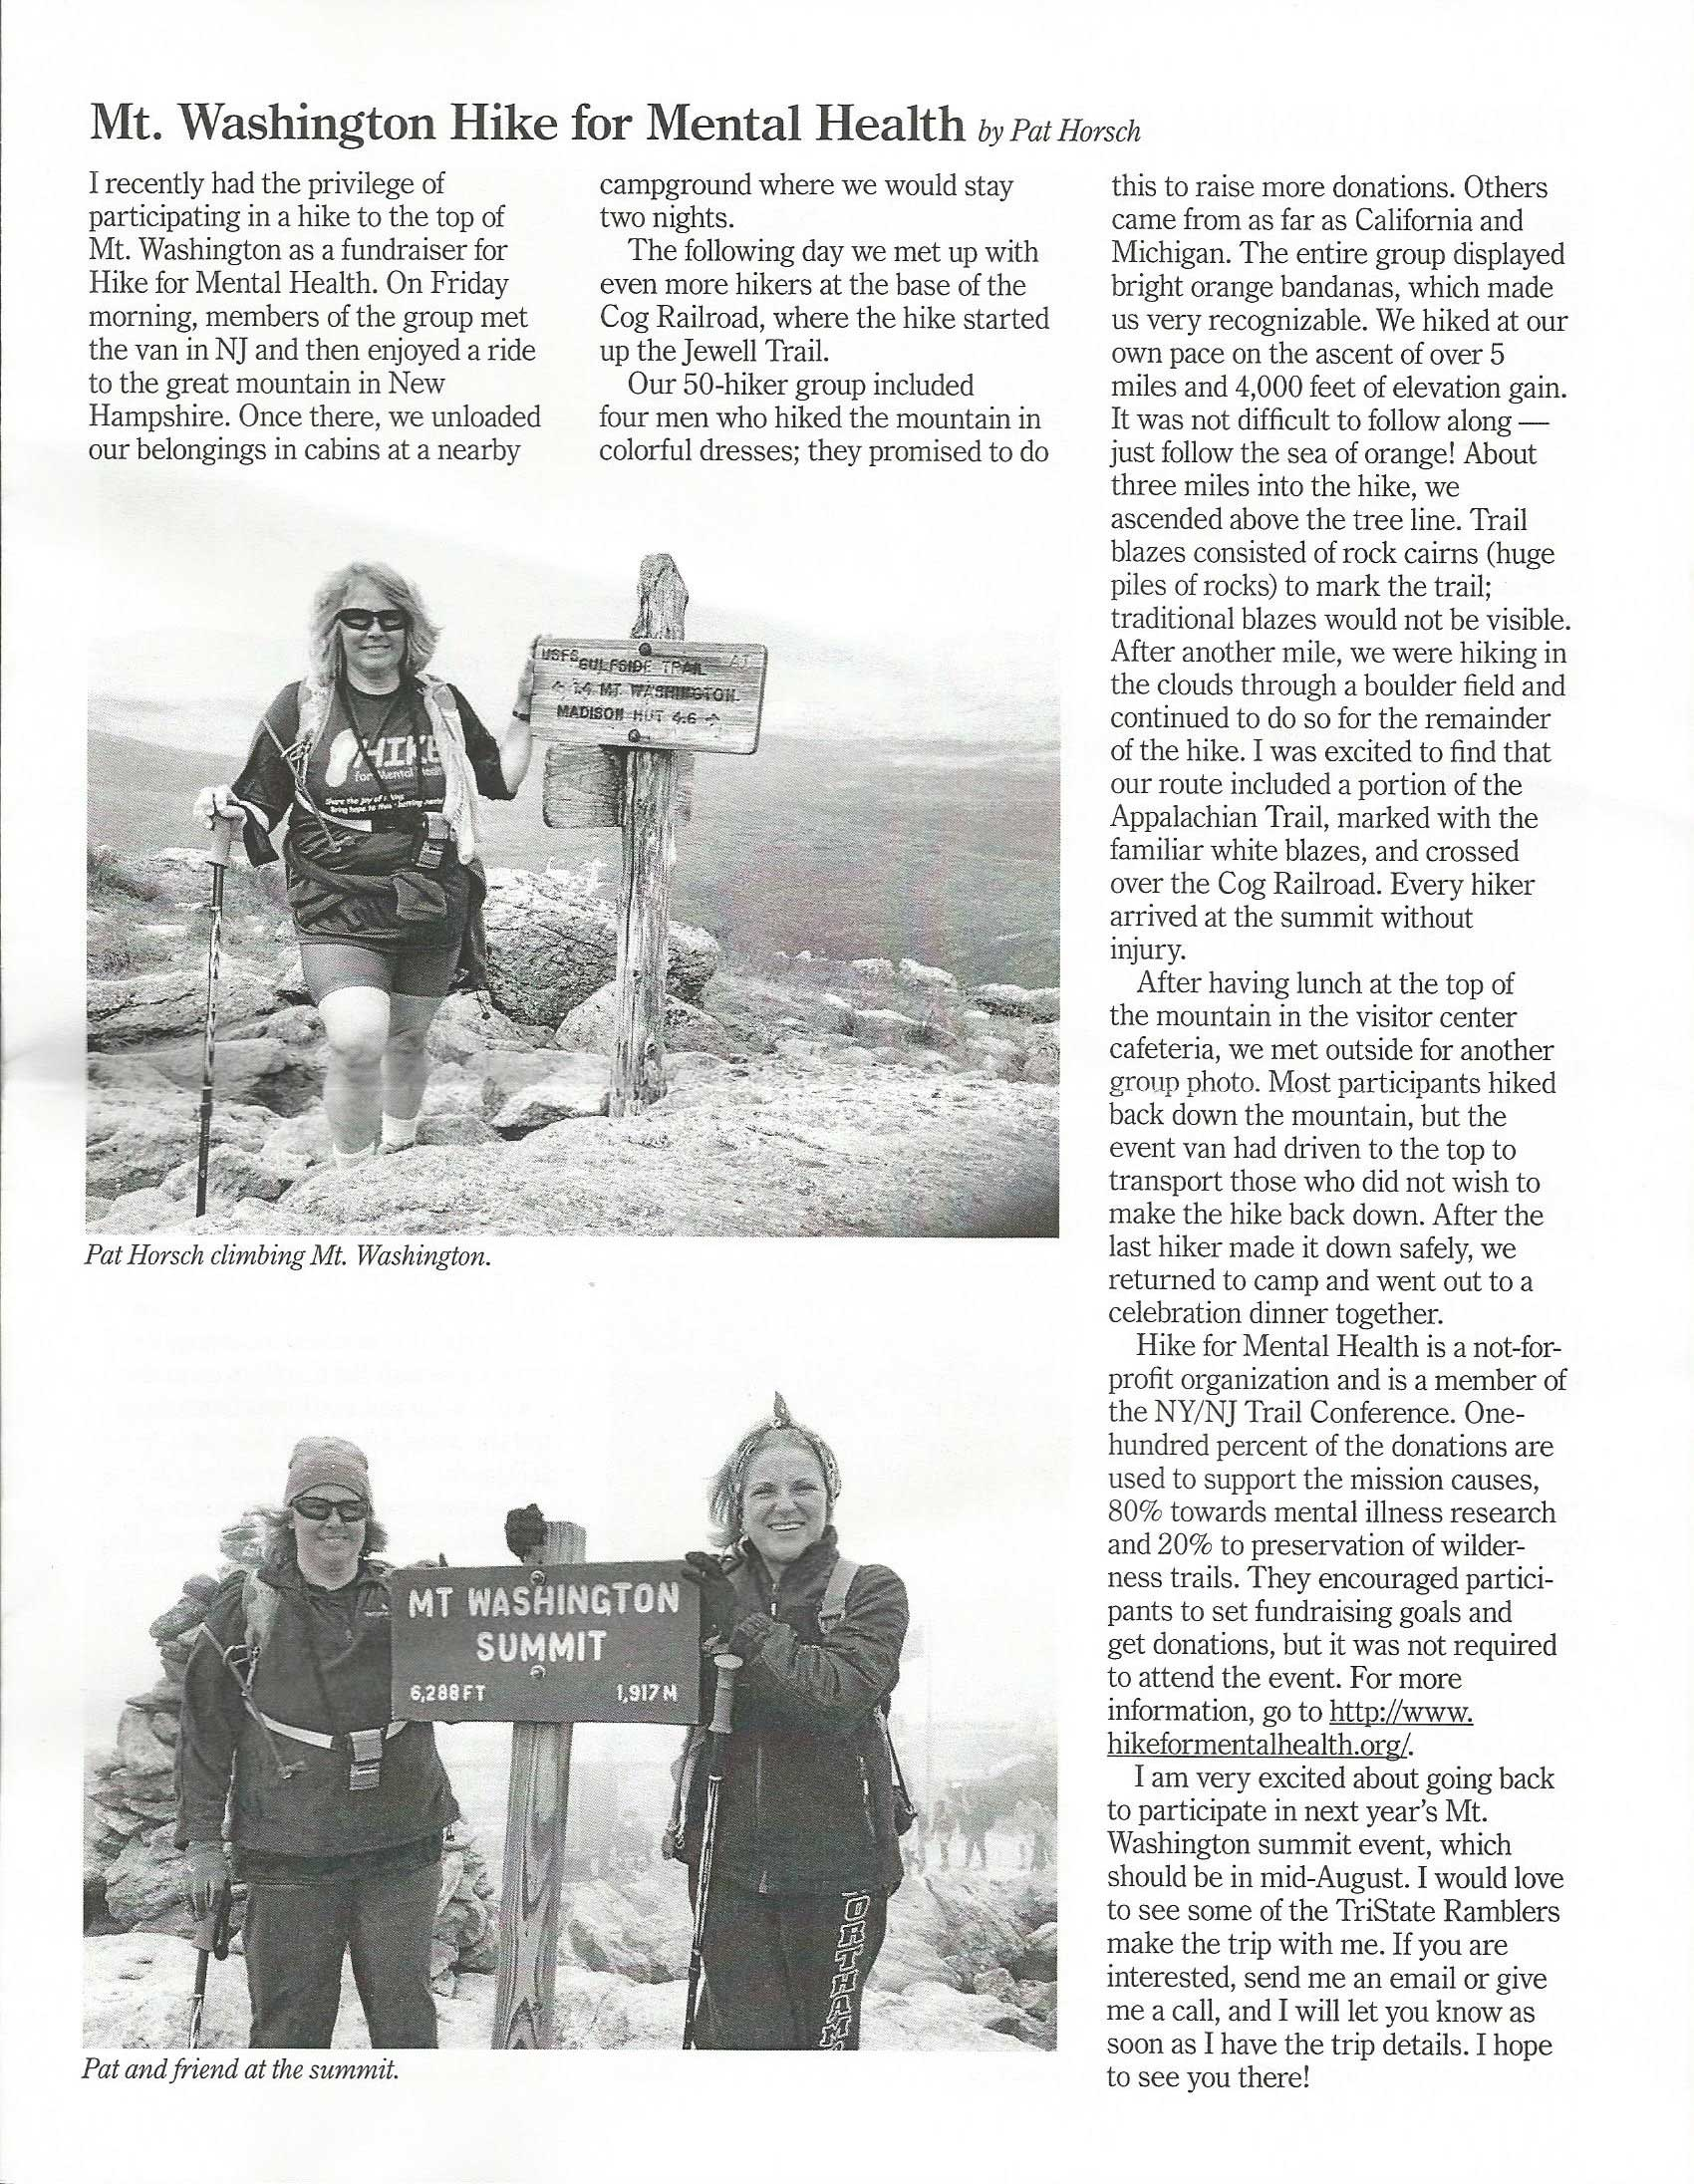 Pat Horsch joined our Third Annual Summit Mt. Washington hike in 2014. We hoping to see her and others from the Tri-State Ramblers back on the summit in 2015. Thanks, for the great write-up, Pat.